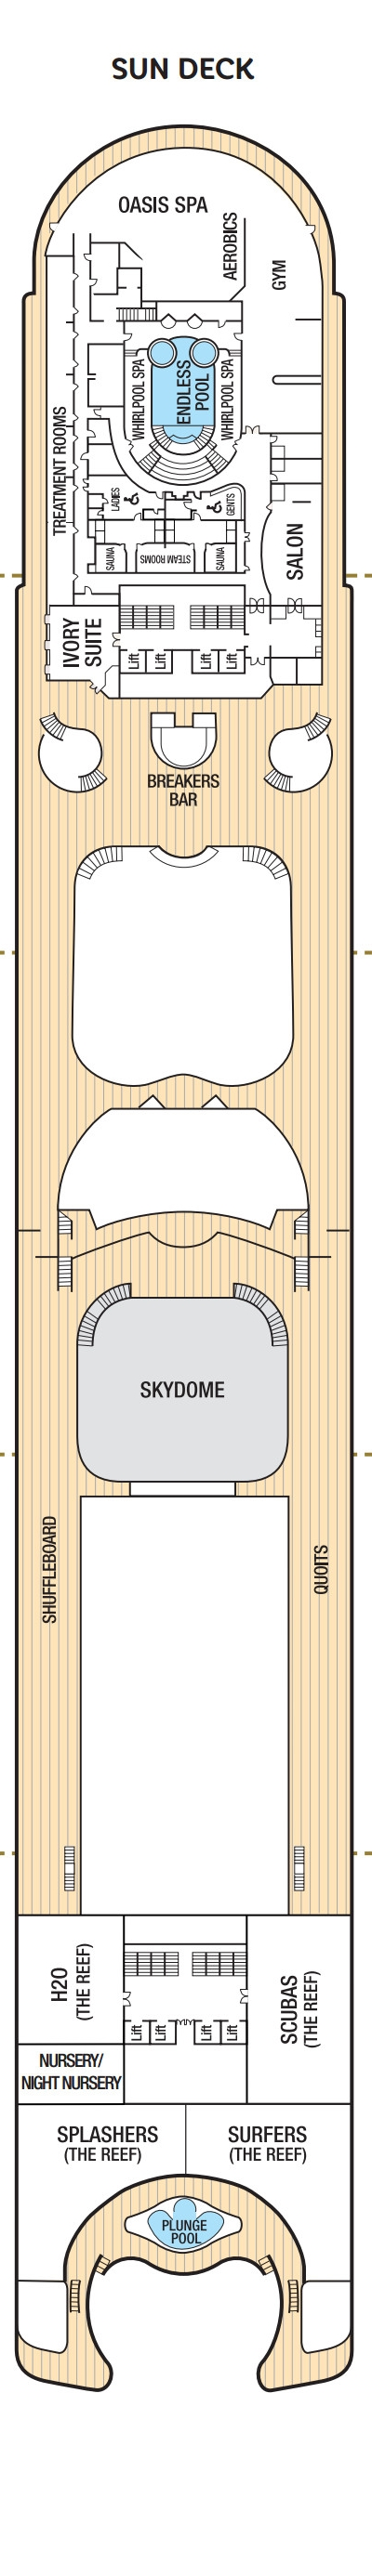 Ventura Sun Deck layout